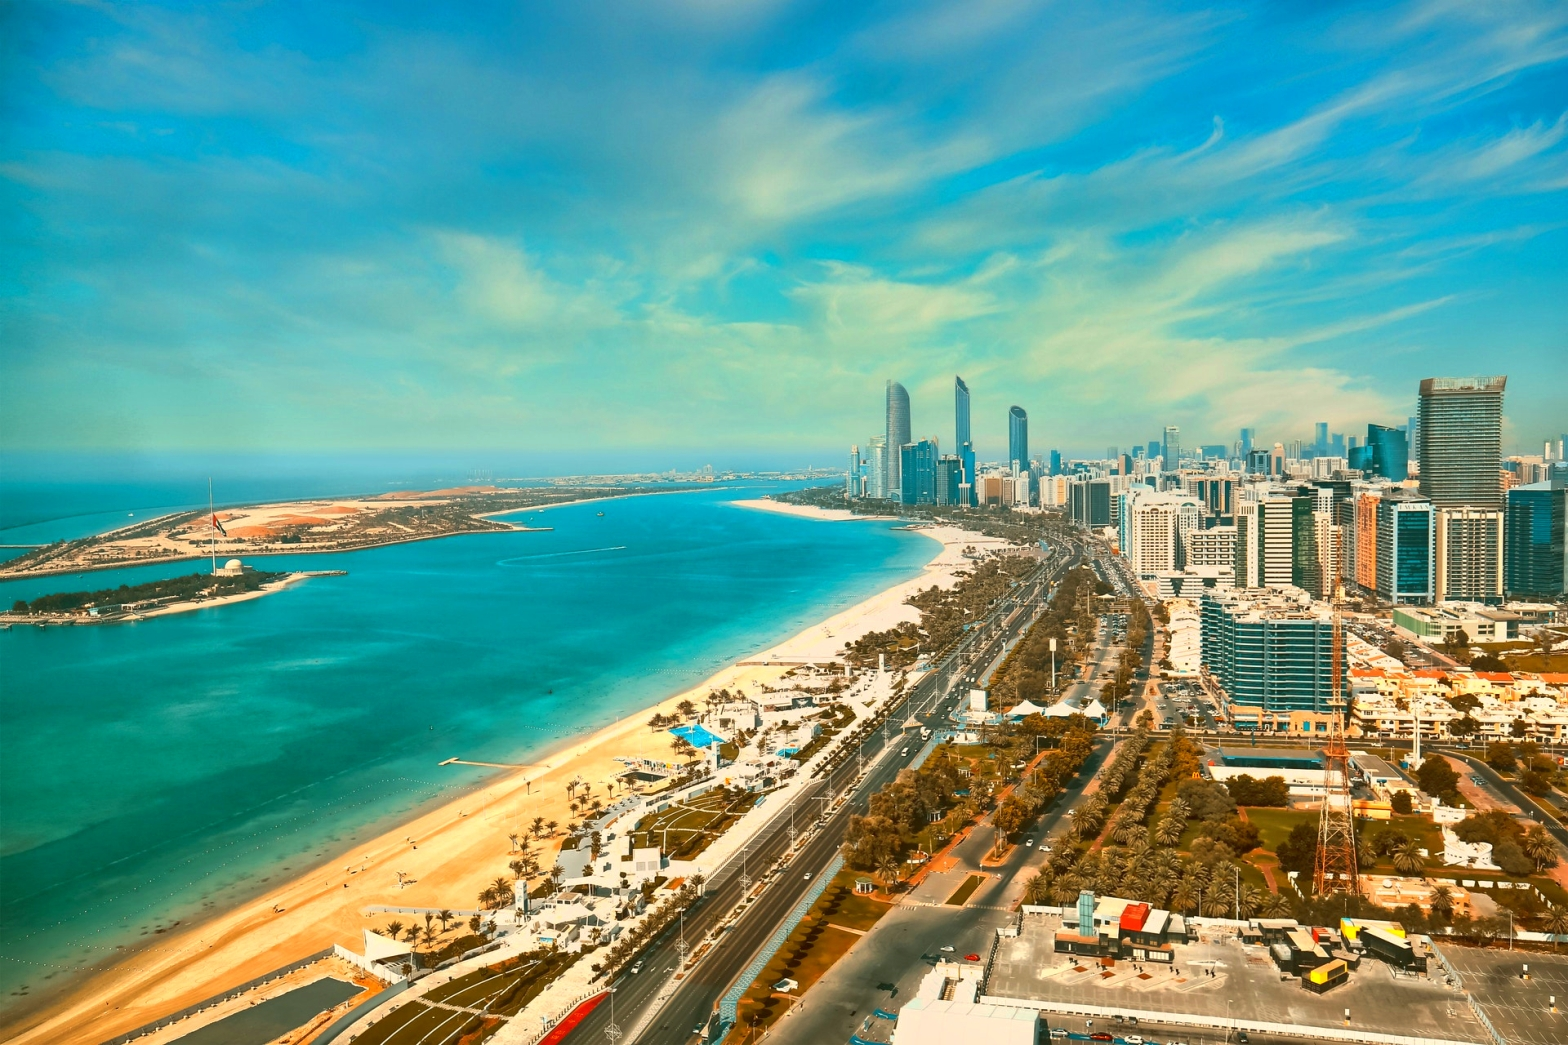 Reasons to visit Abu Dhabi